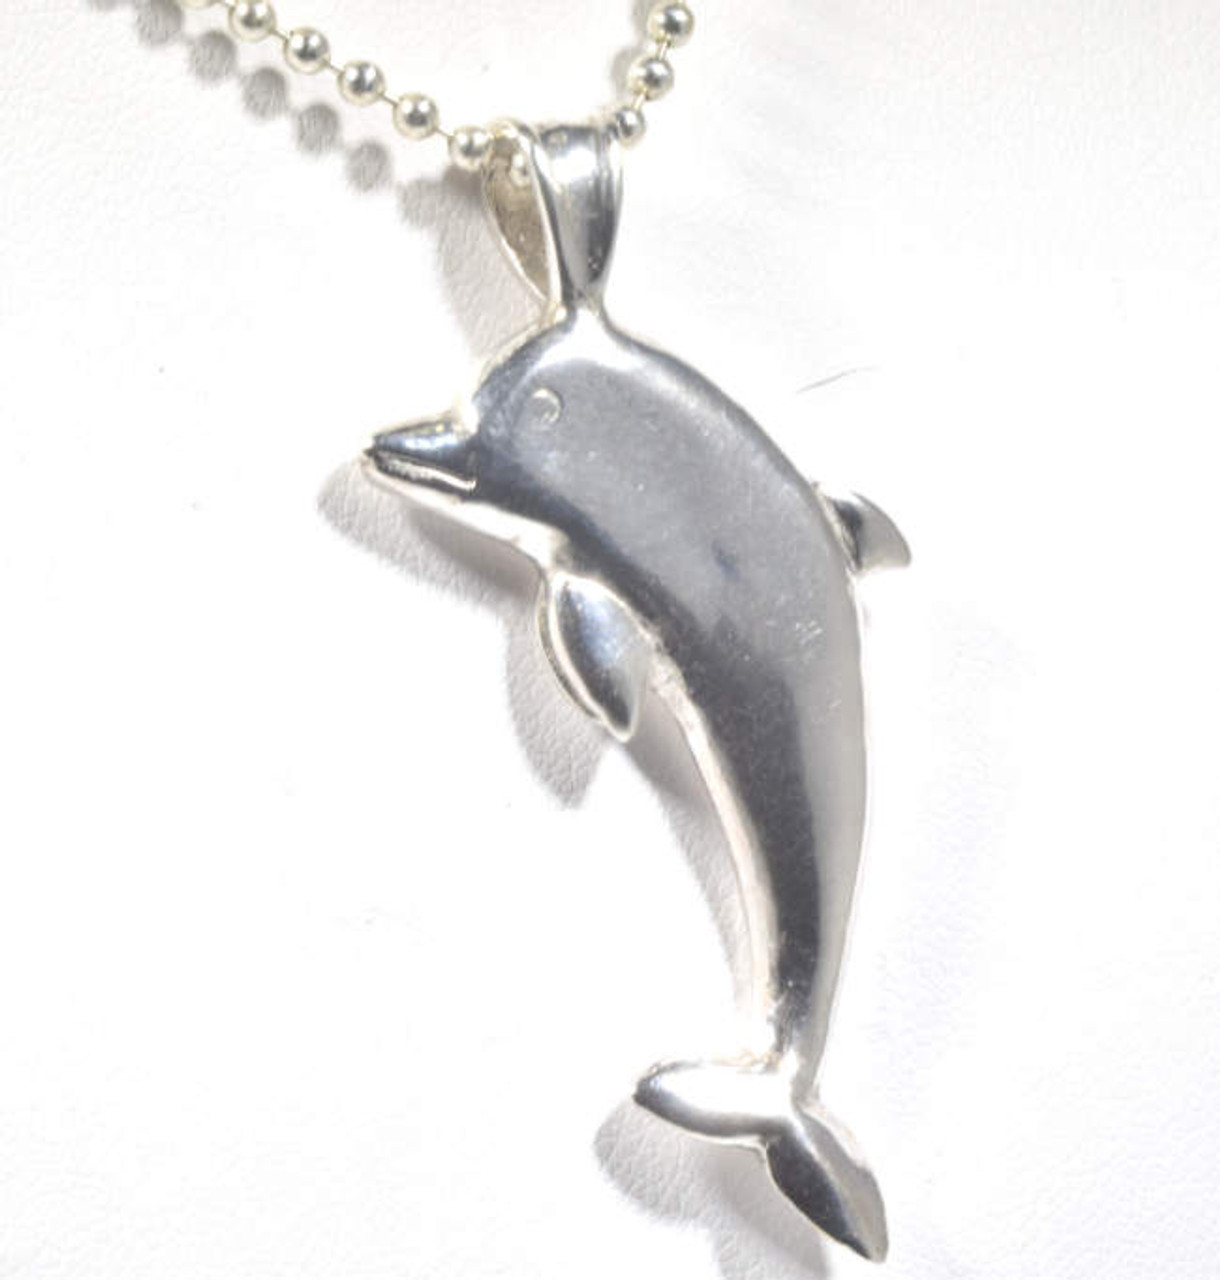 Dolphin silver pendant the sterling silver dolphin pendant is hand crafted in portland maine the dolphin is aloadofball Image collections